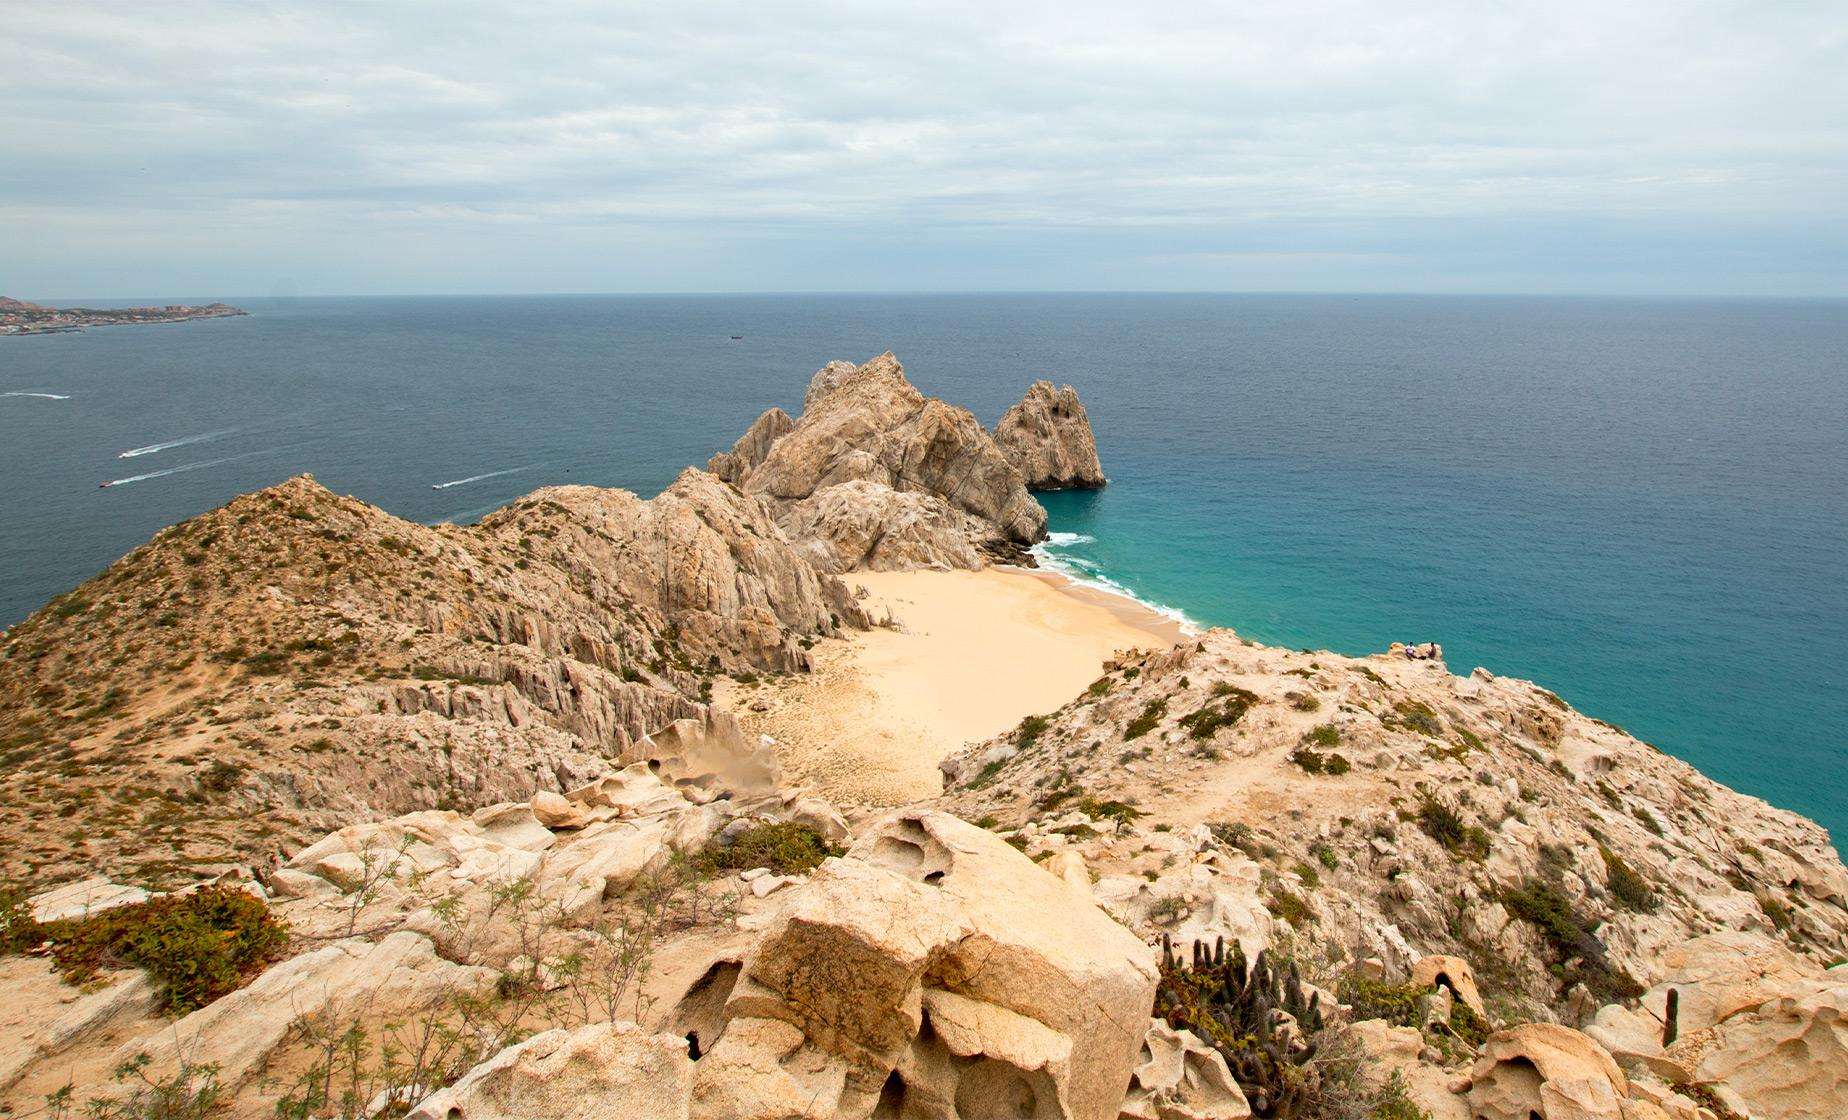 Jeep Adventure and Hiking at Fox Canyon Tour from Cabo San Lucas